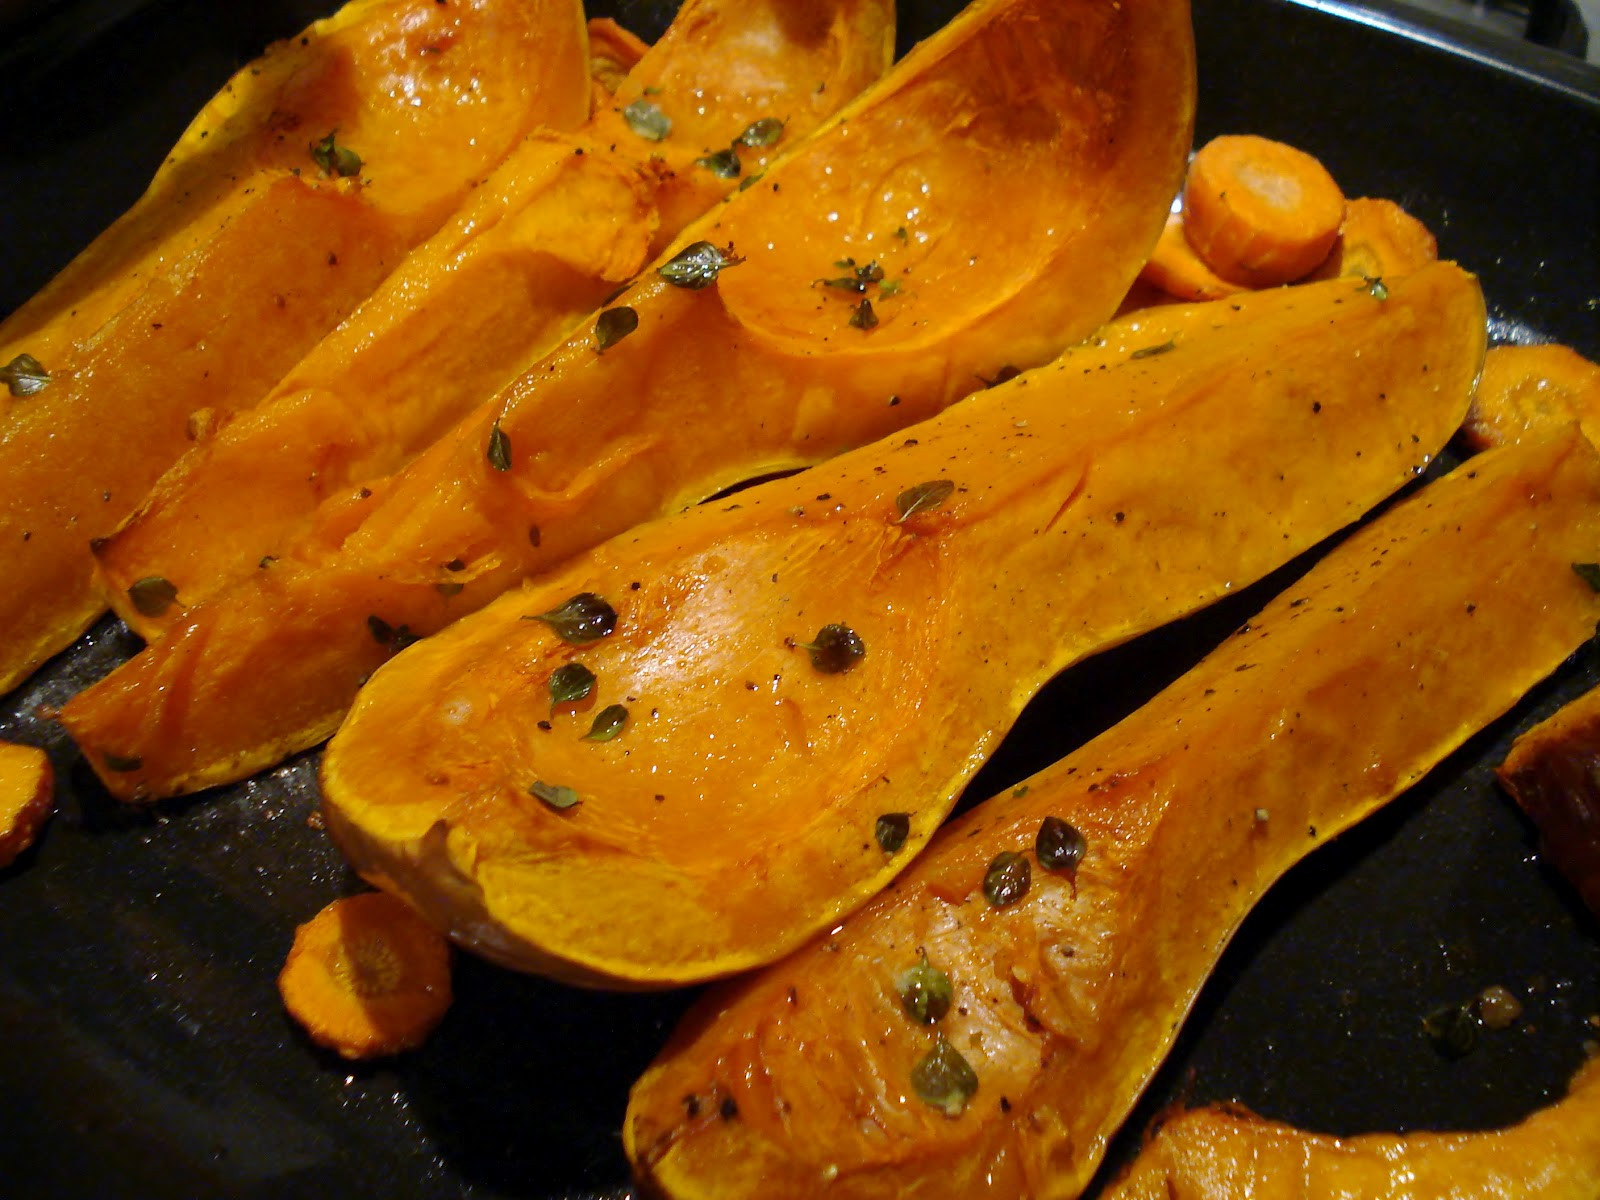 Peel off the skin and add the roasted squash and the herbs to the pan.